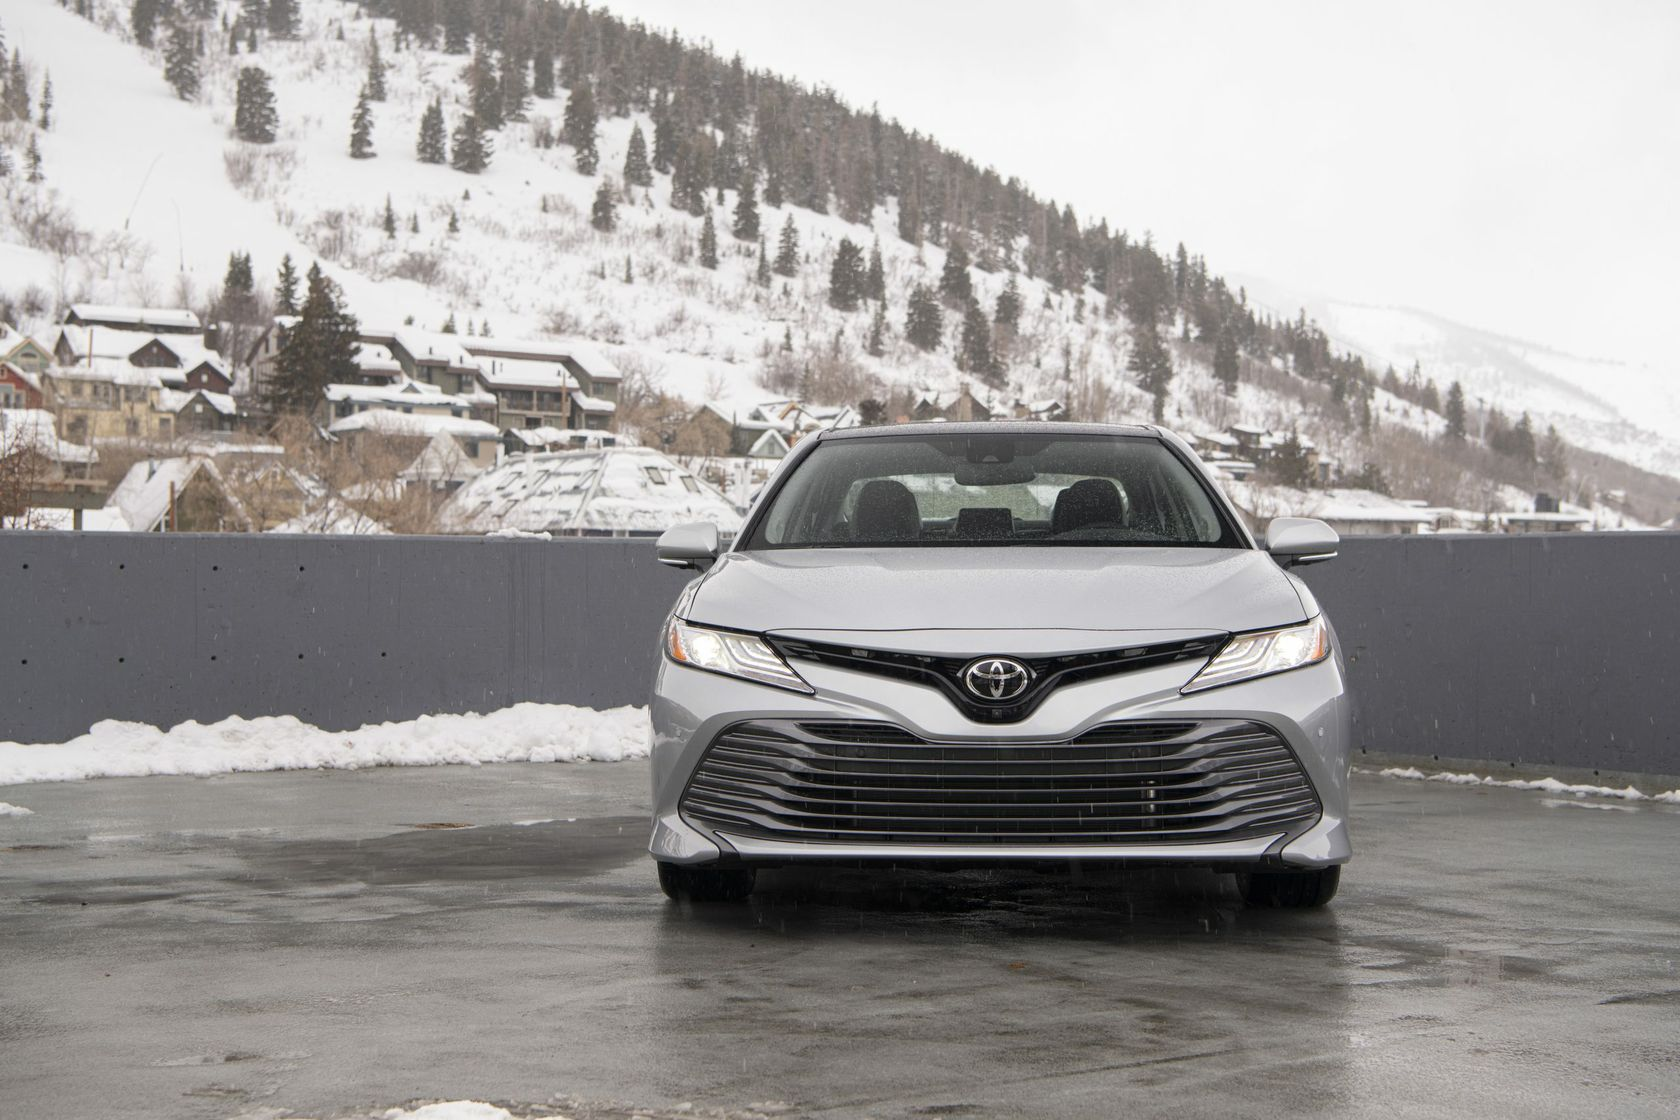 2020_Camry_XLE_AWD_Celestite-Silver_033-scaled